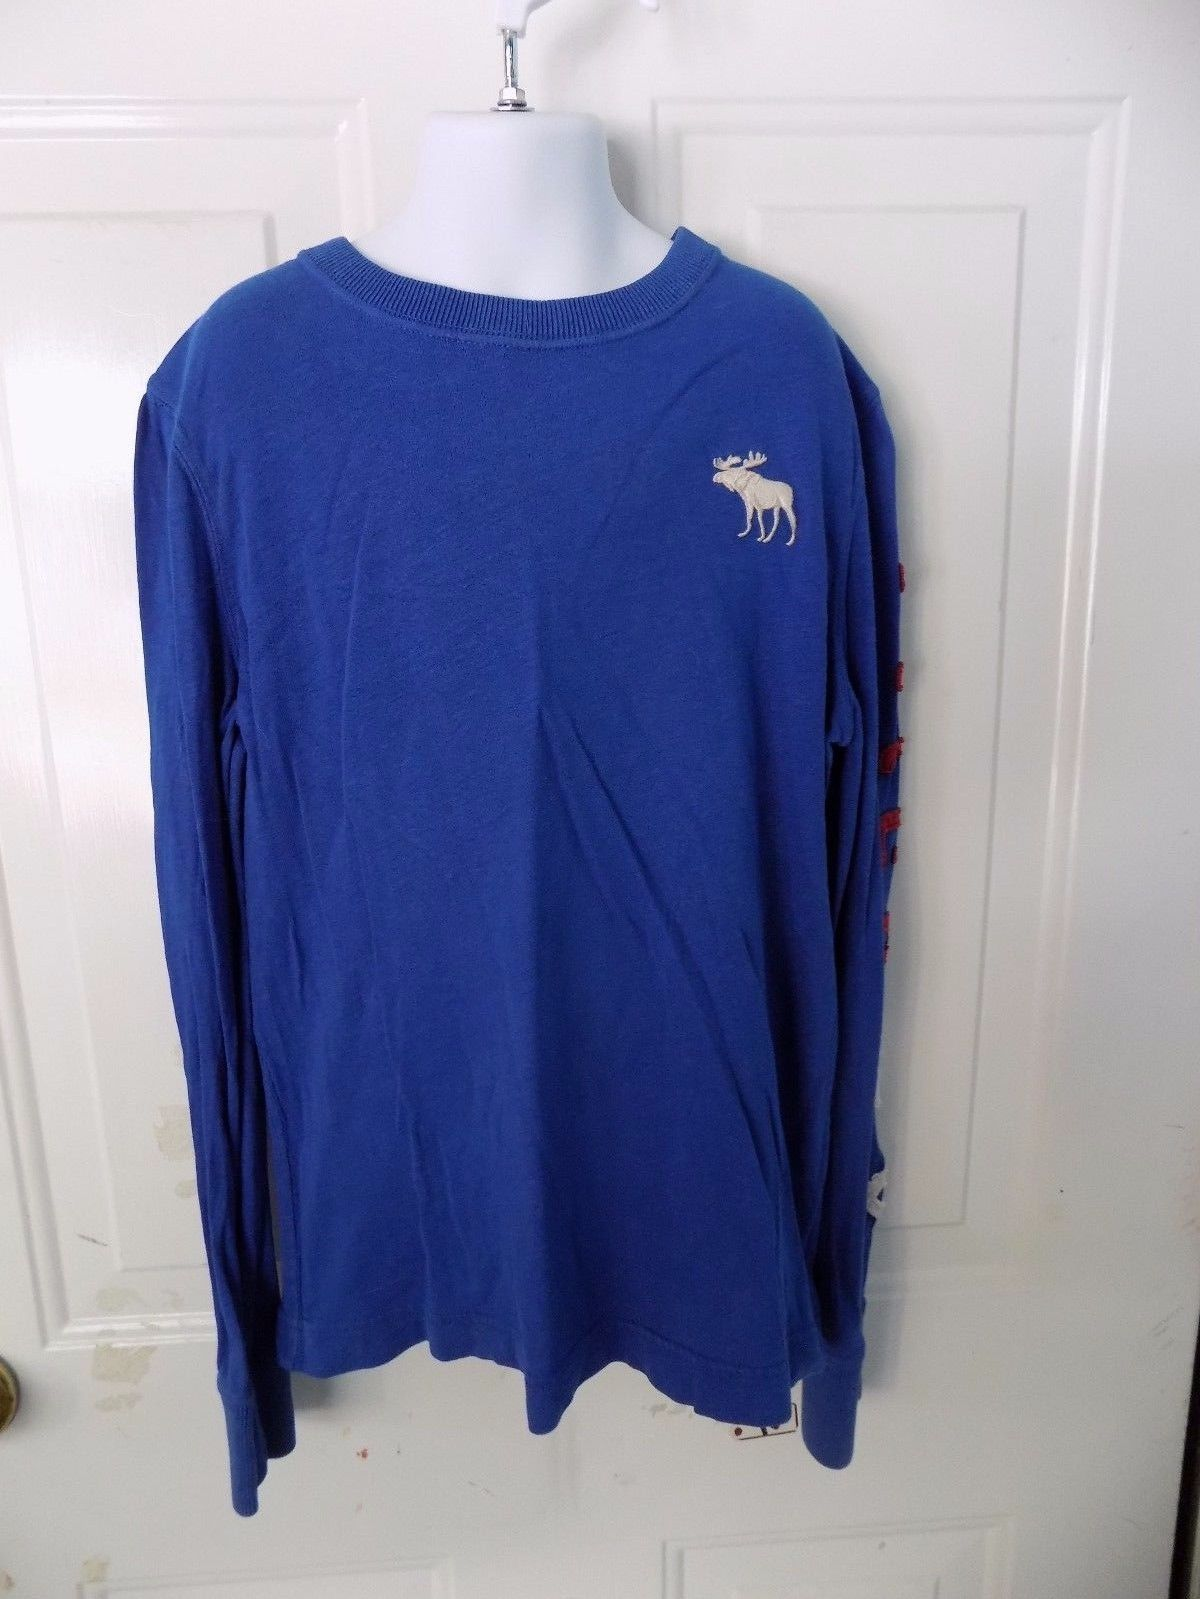 Primary image for Abercrombie & Fitch Blue Long Sleeve Shirt Size S Boy's EUC